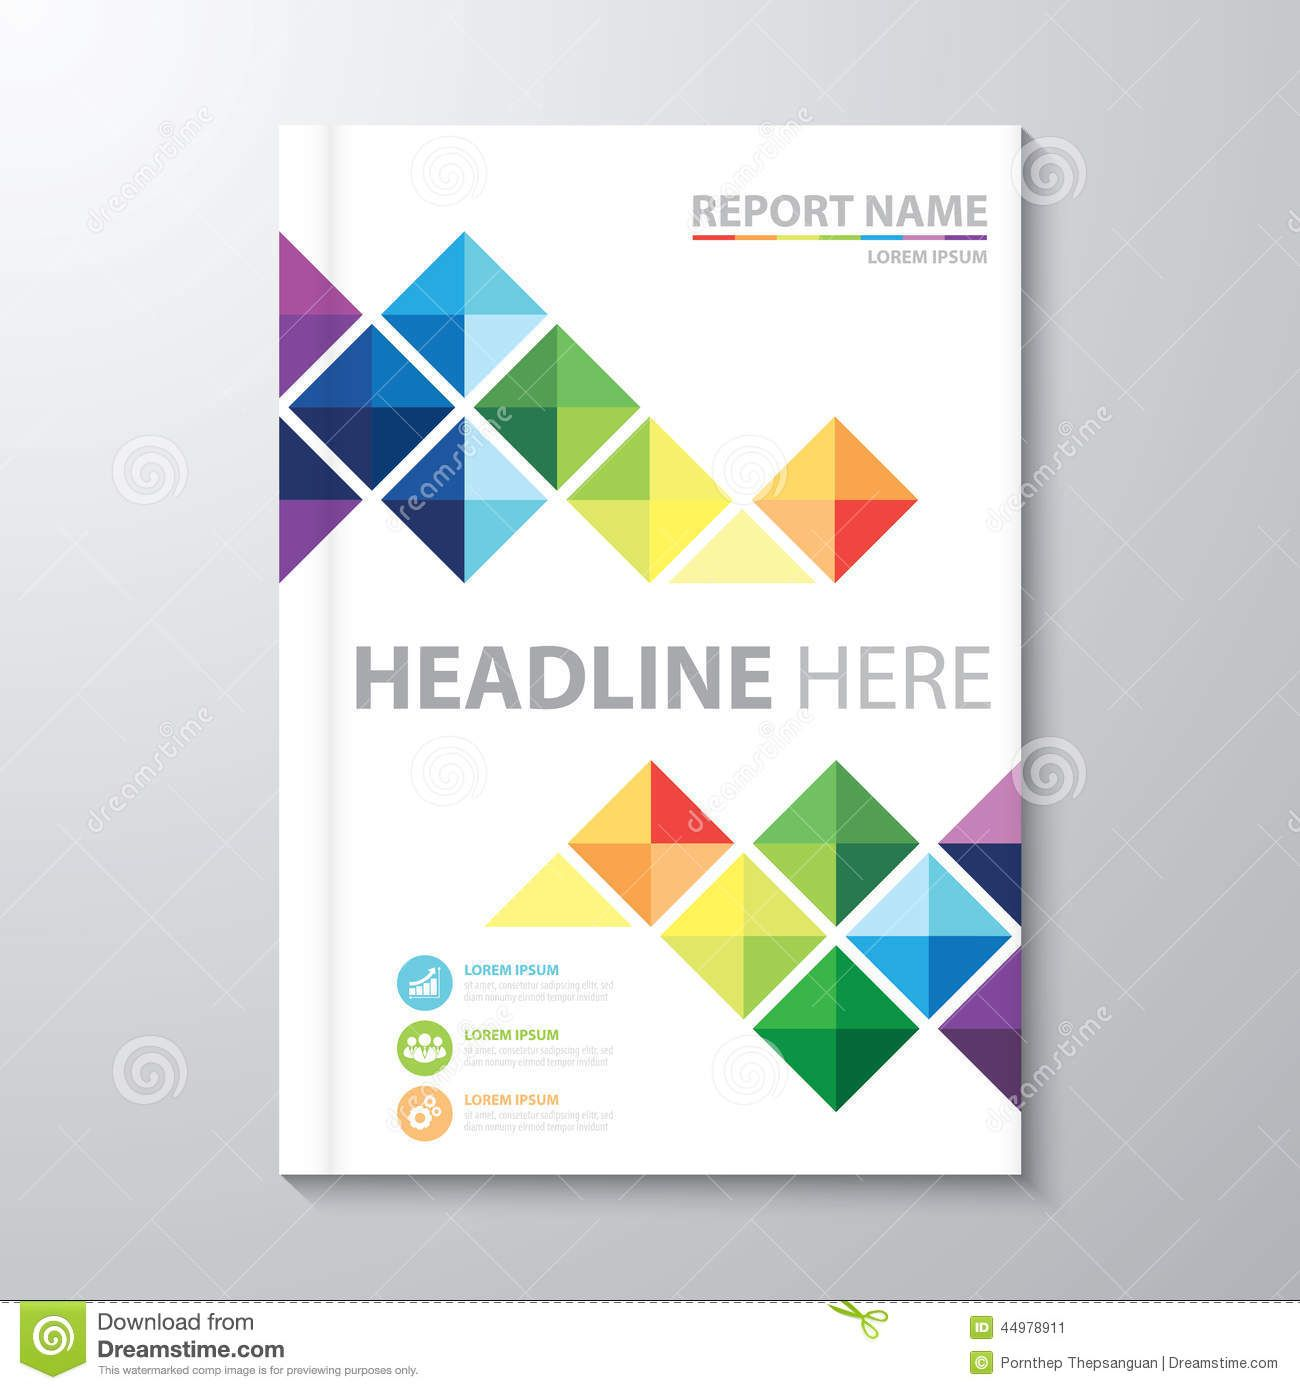 Annual Report Cover Design Template | cover | Pinterest | Origami ...